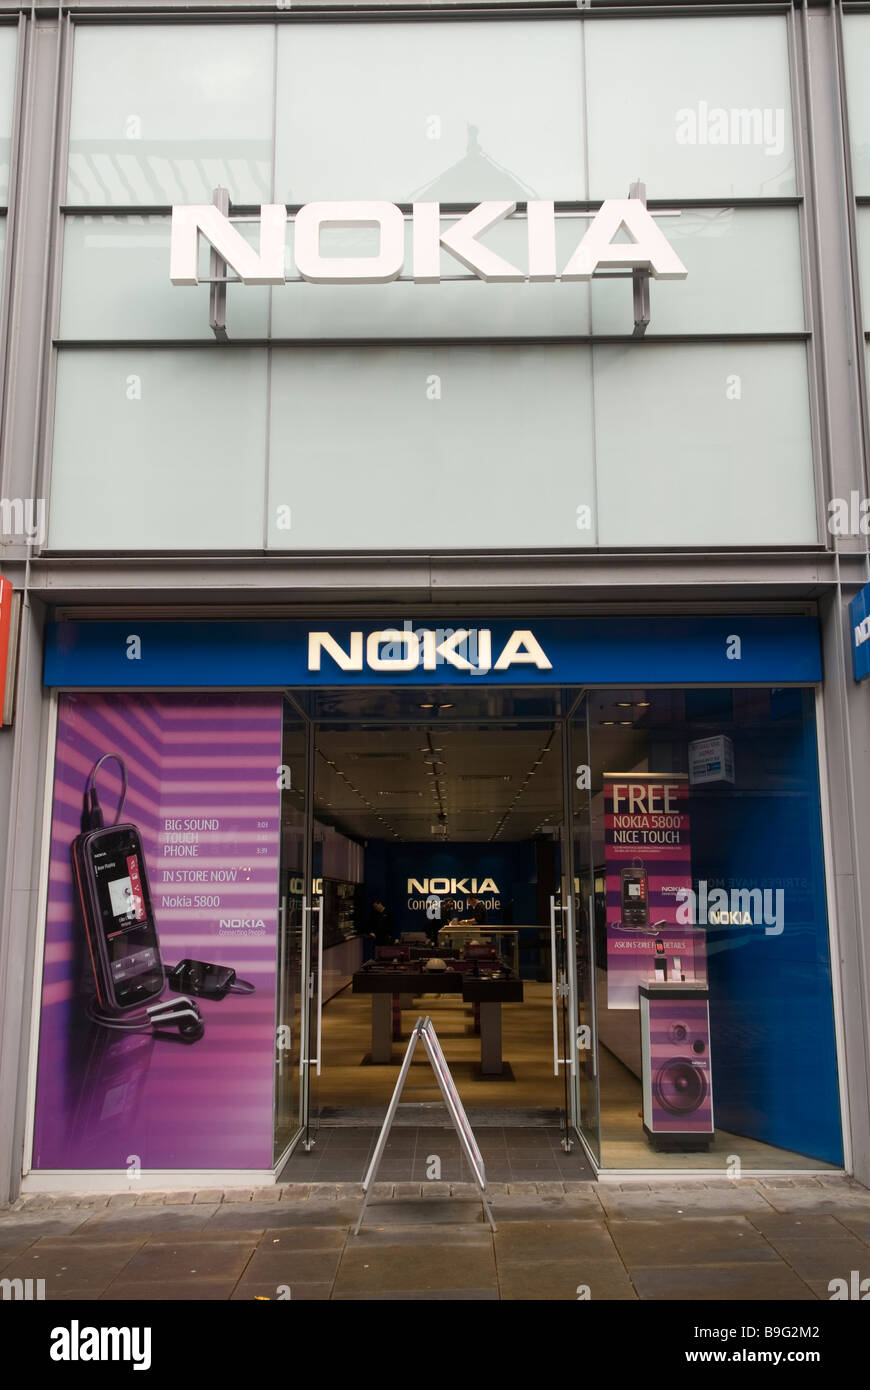 Nokia mobile telephone shop on Market street Manchester city centre UK - Stock Image